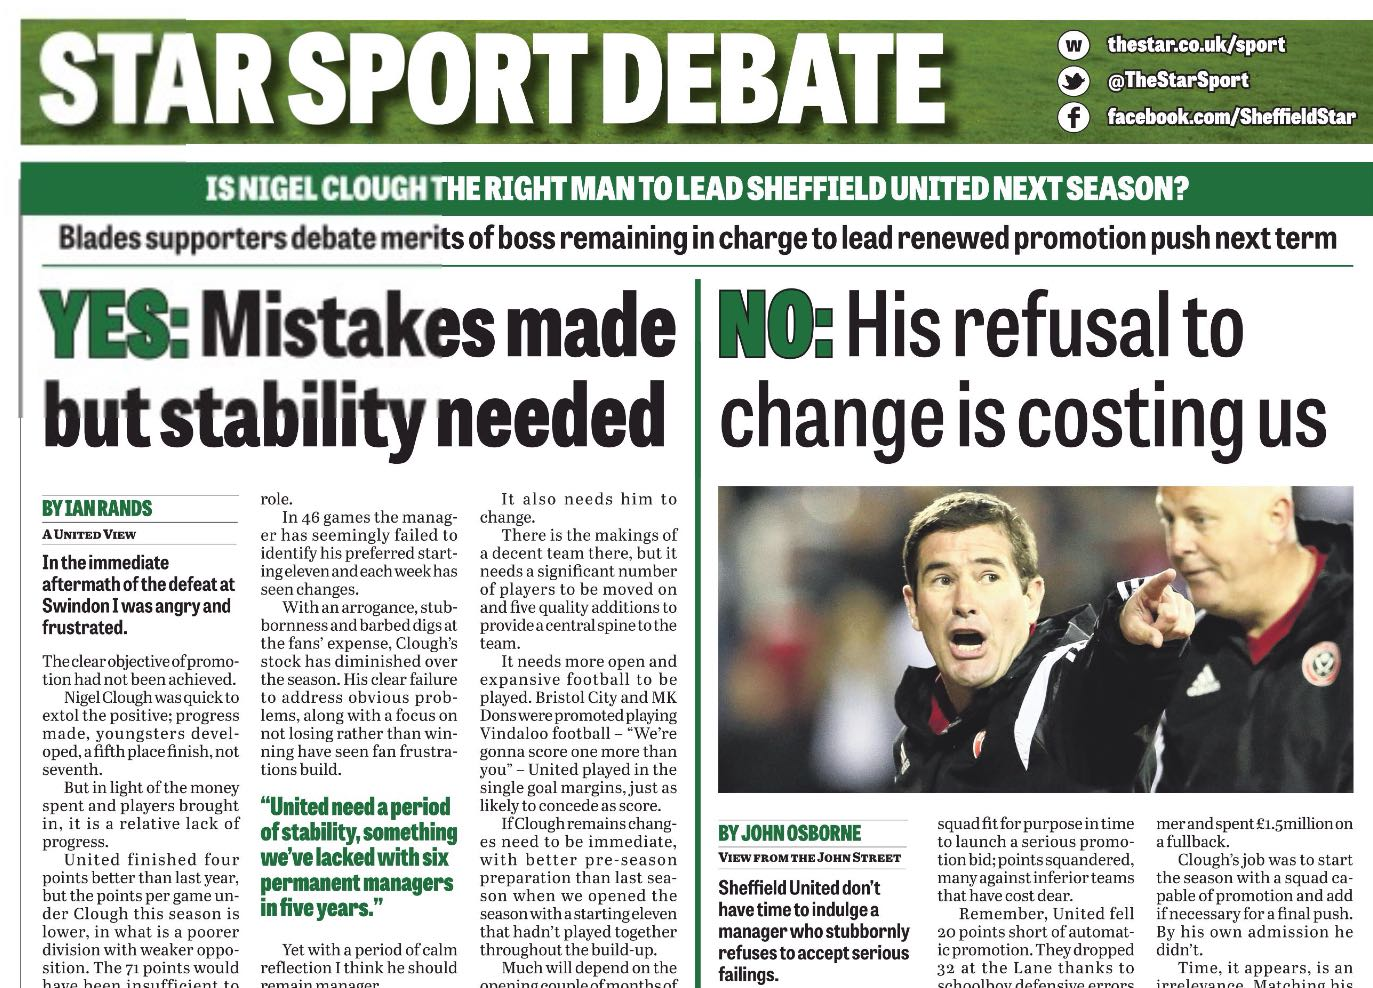 STAR SPORTS DEBATE: united blogger IAN RANDS IS IN NIGEL CLOUGHCAMPFOUR DAYS BEFORE the manager's DISMISSAL FROM BRAMALL LANE.